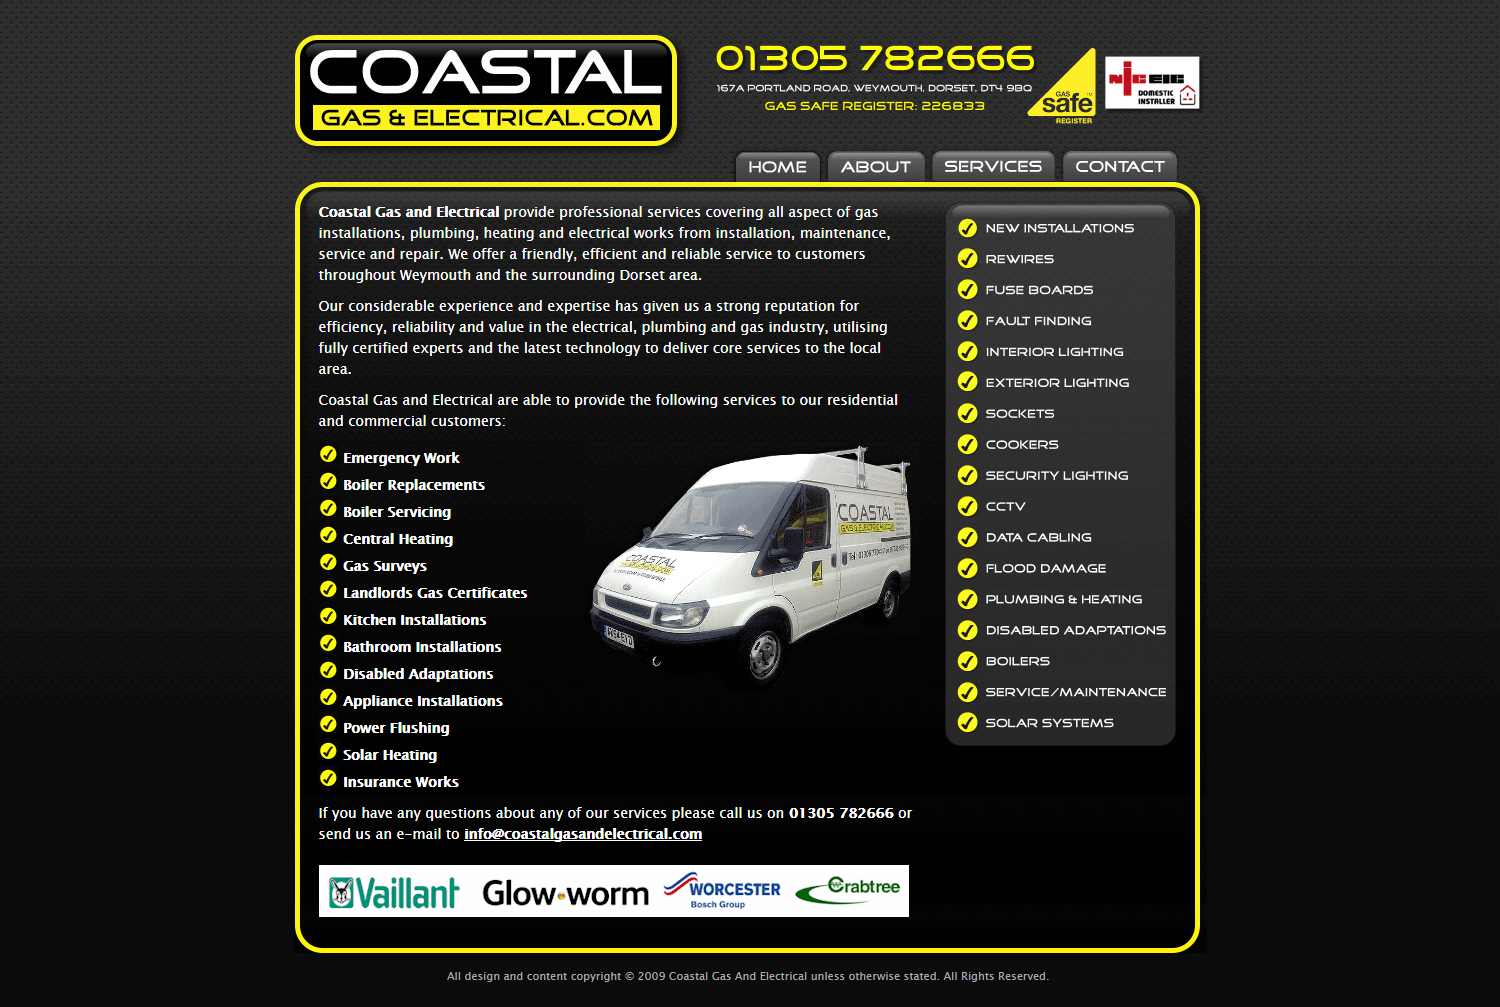 Coastal Gas & Electrical